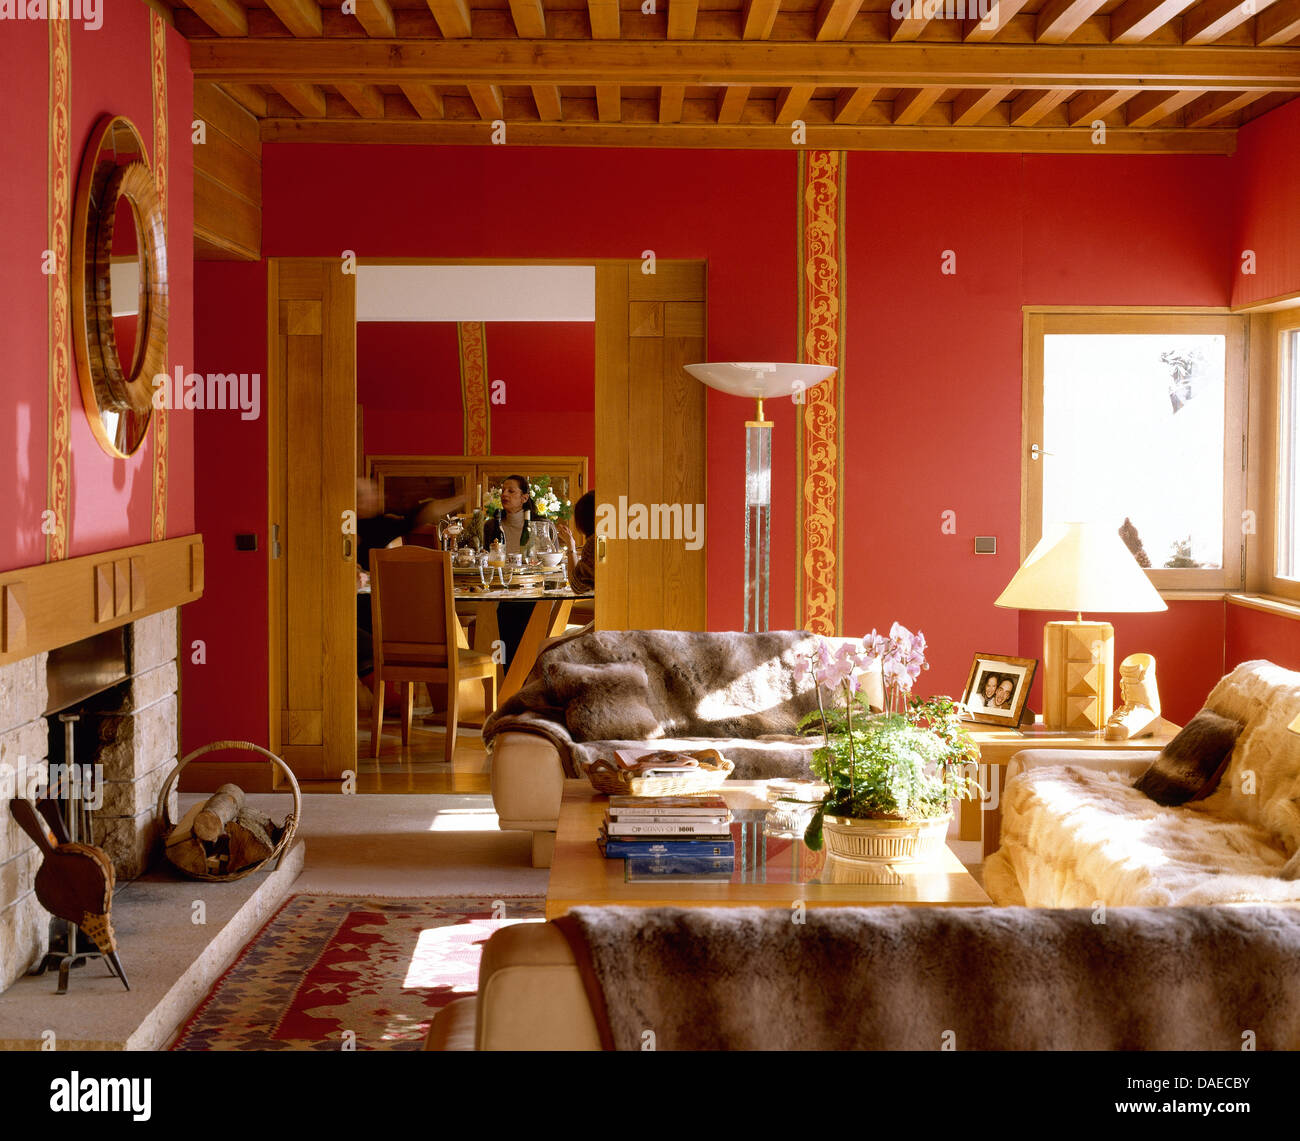 Faux Fur Rugs On Sofas In Red Alpine Living Room With Wooden Beamed